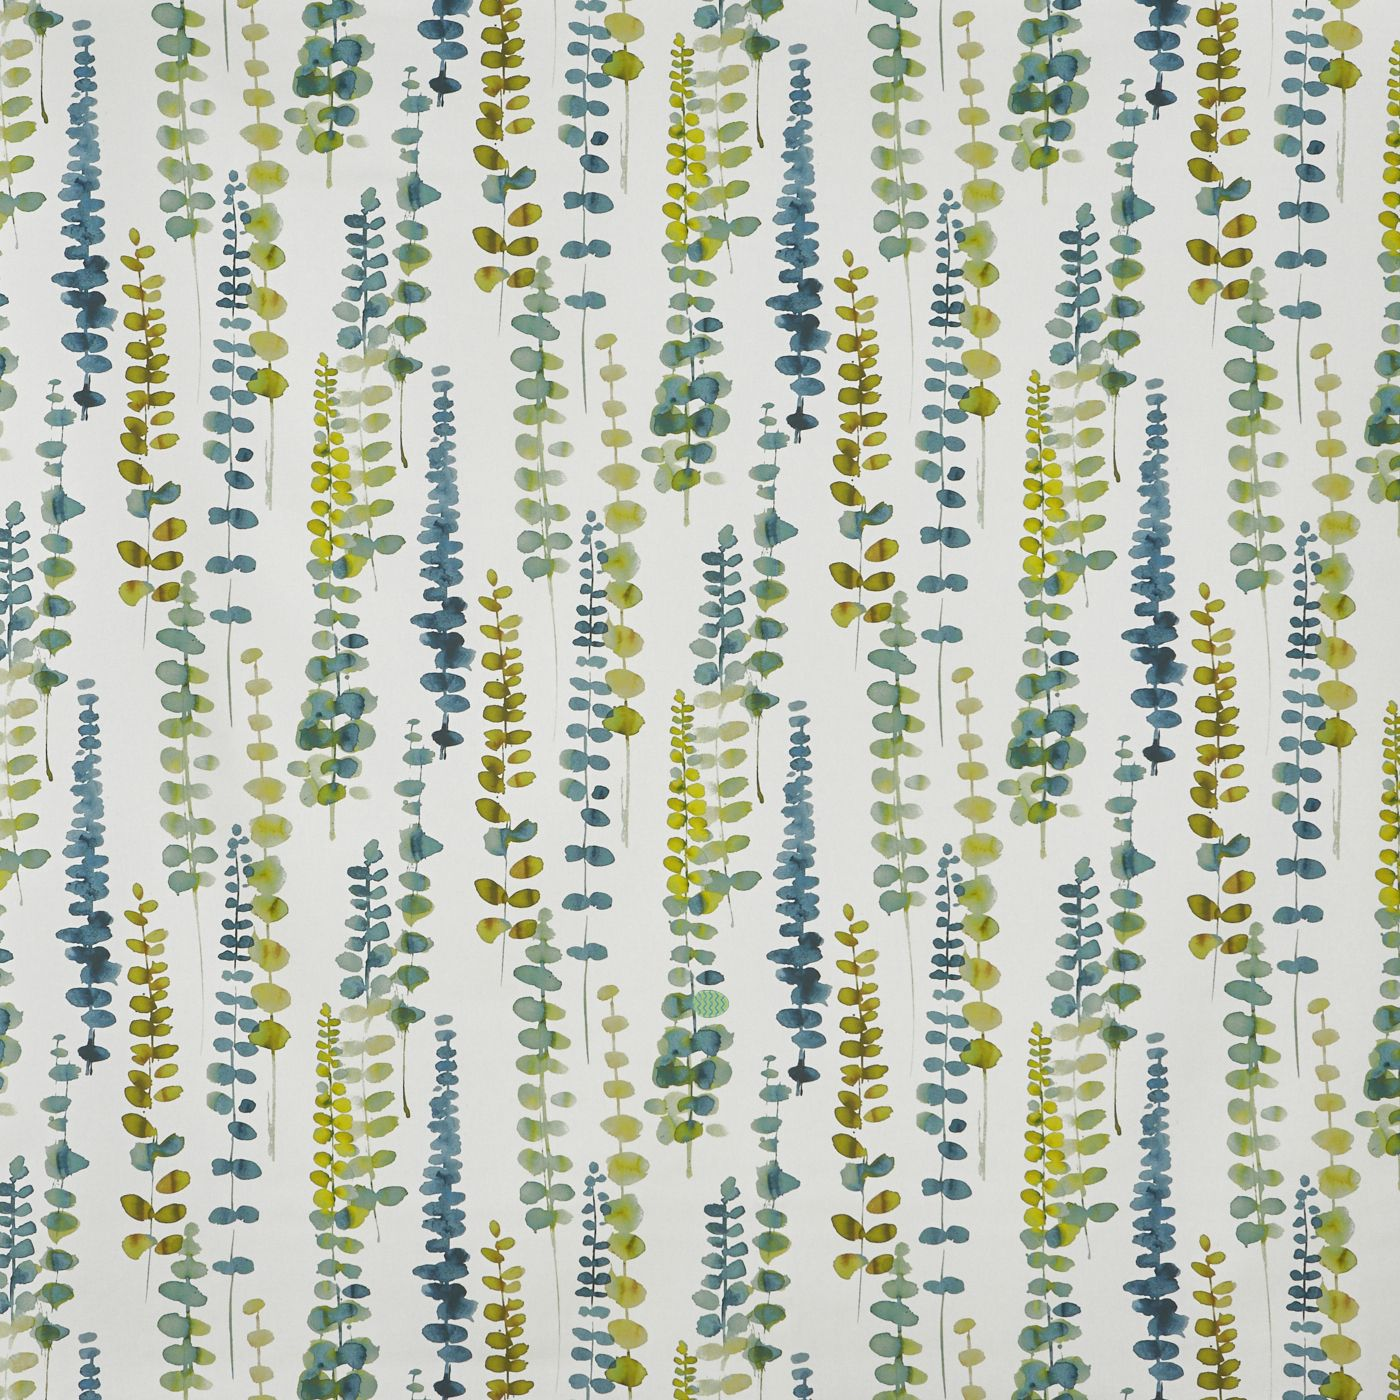 Easter brain teaser: Can you spot the hidden egg in this patterned fabric?